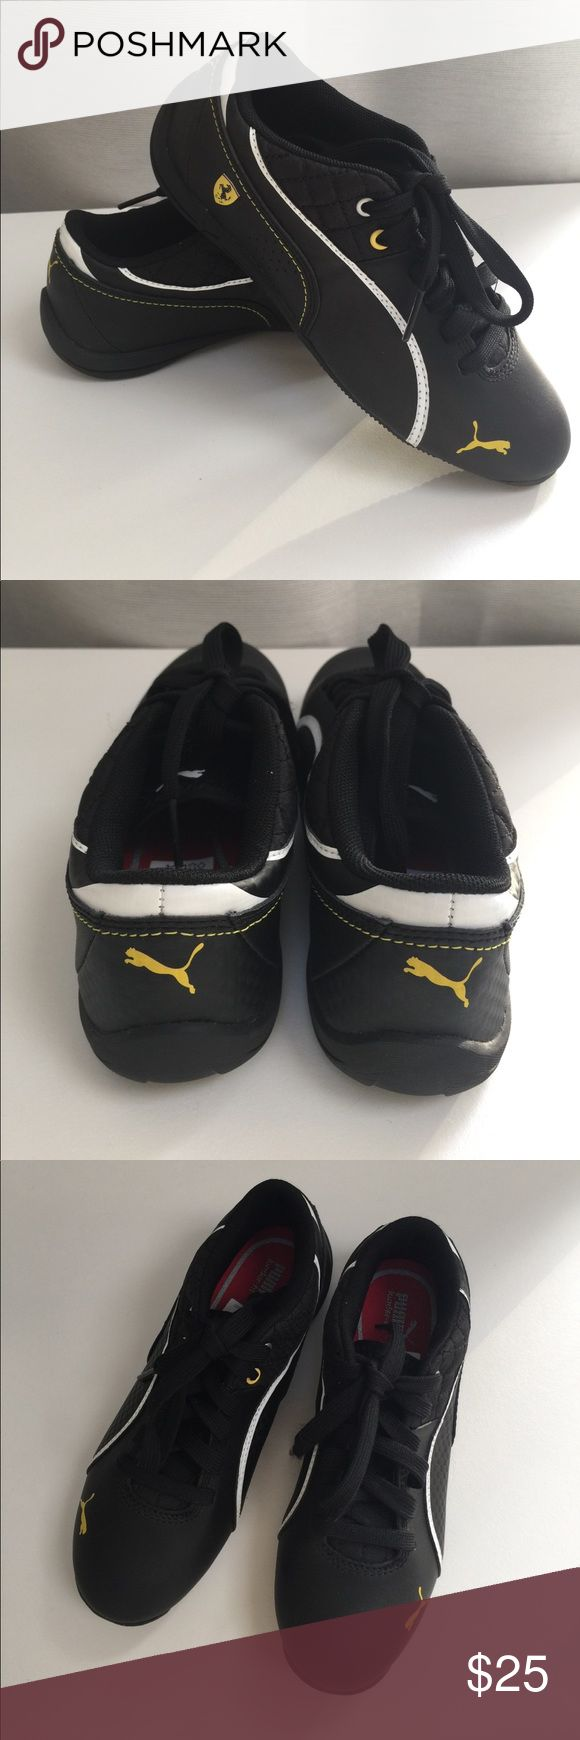 Kids Puma Ferrari Sneaker This is the Ferrari edition driving shoe by Puma. This black shoe with yellow and white accents was barely worn once (it was an impulse buy by husband and was too small for my son 😆). Sorry no box.  Non smoking home and please no🚫trades. Puma Shoes Sneakers